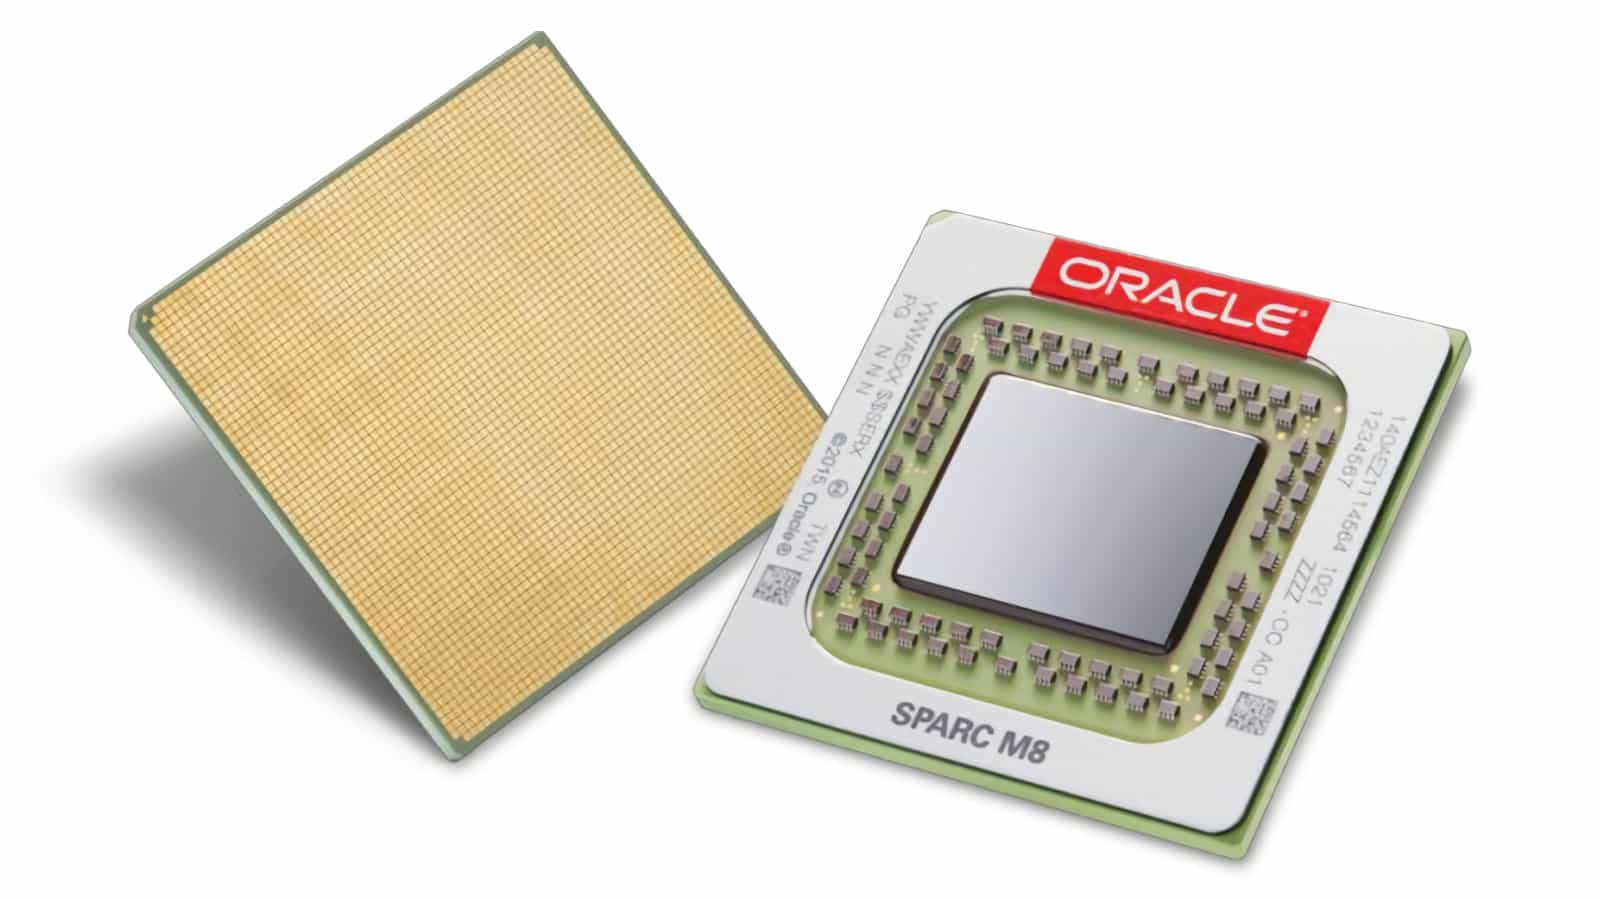 Oracle Sparc M8